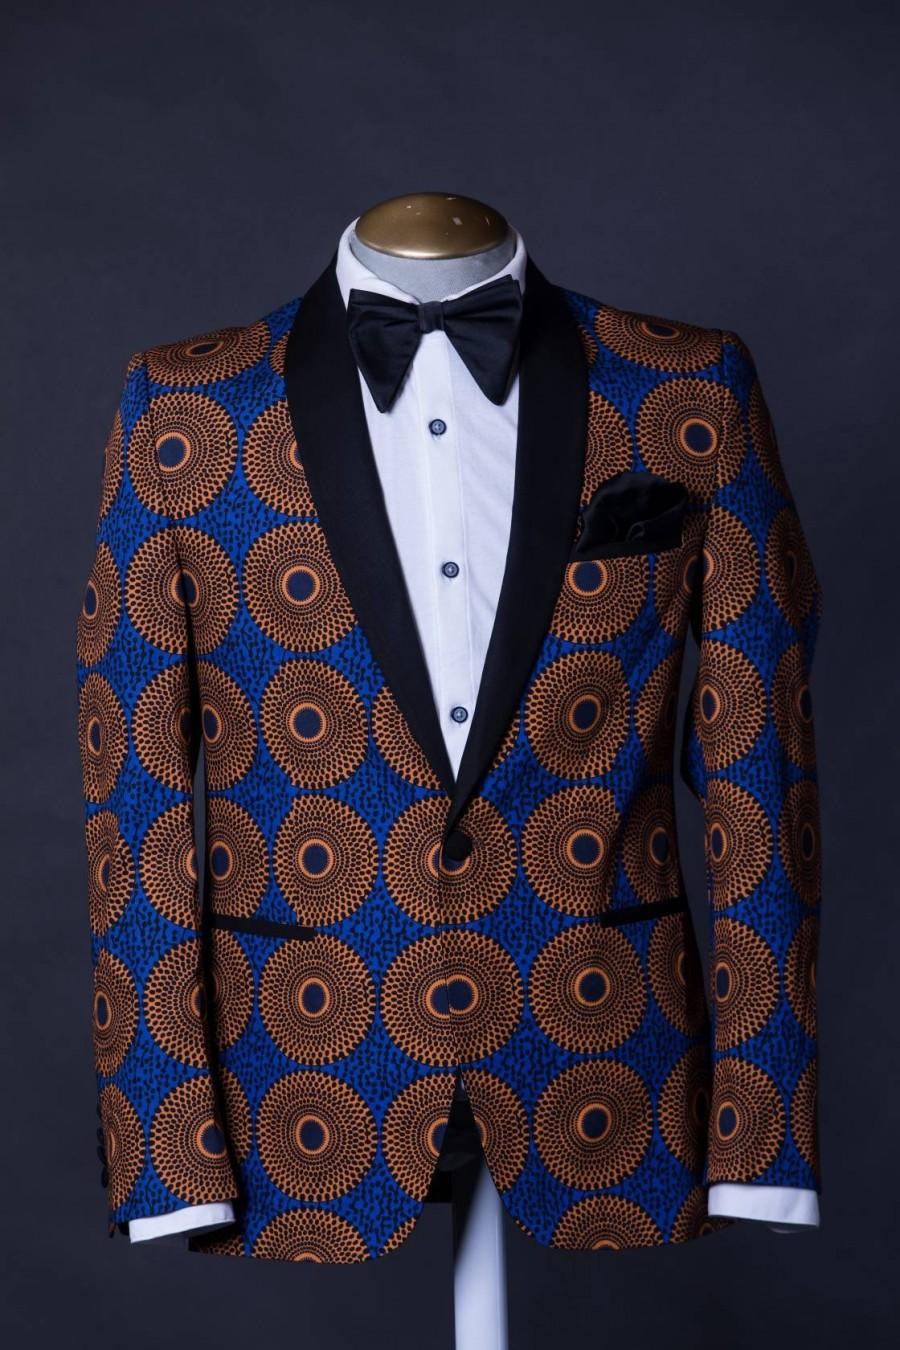 Wedding - DonOmer Blazer. African print blazer men, men's African blazers, Ankara blazer men, kente blazer men, African fashion men, African style men